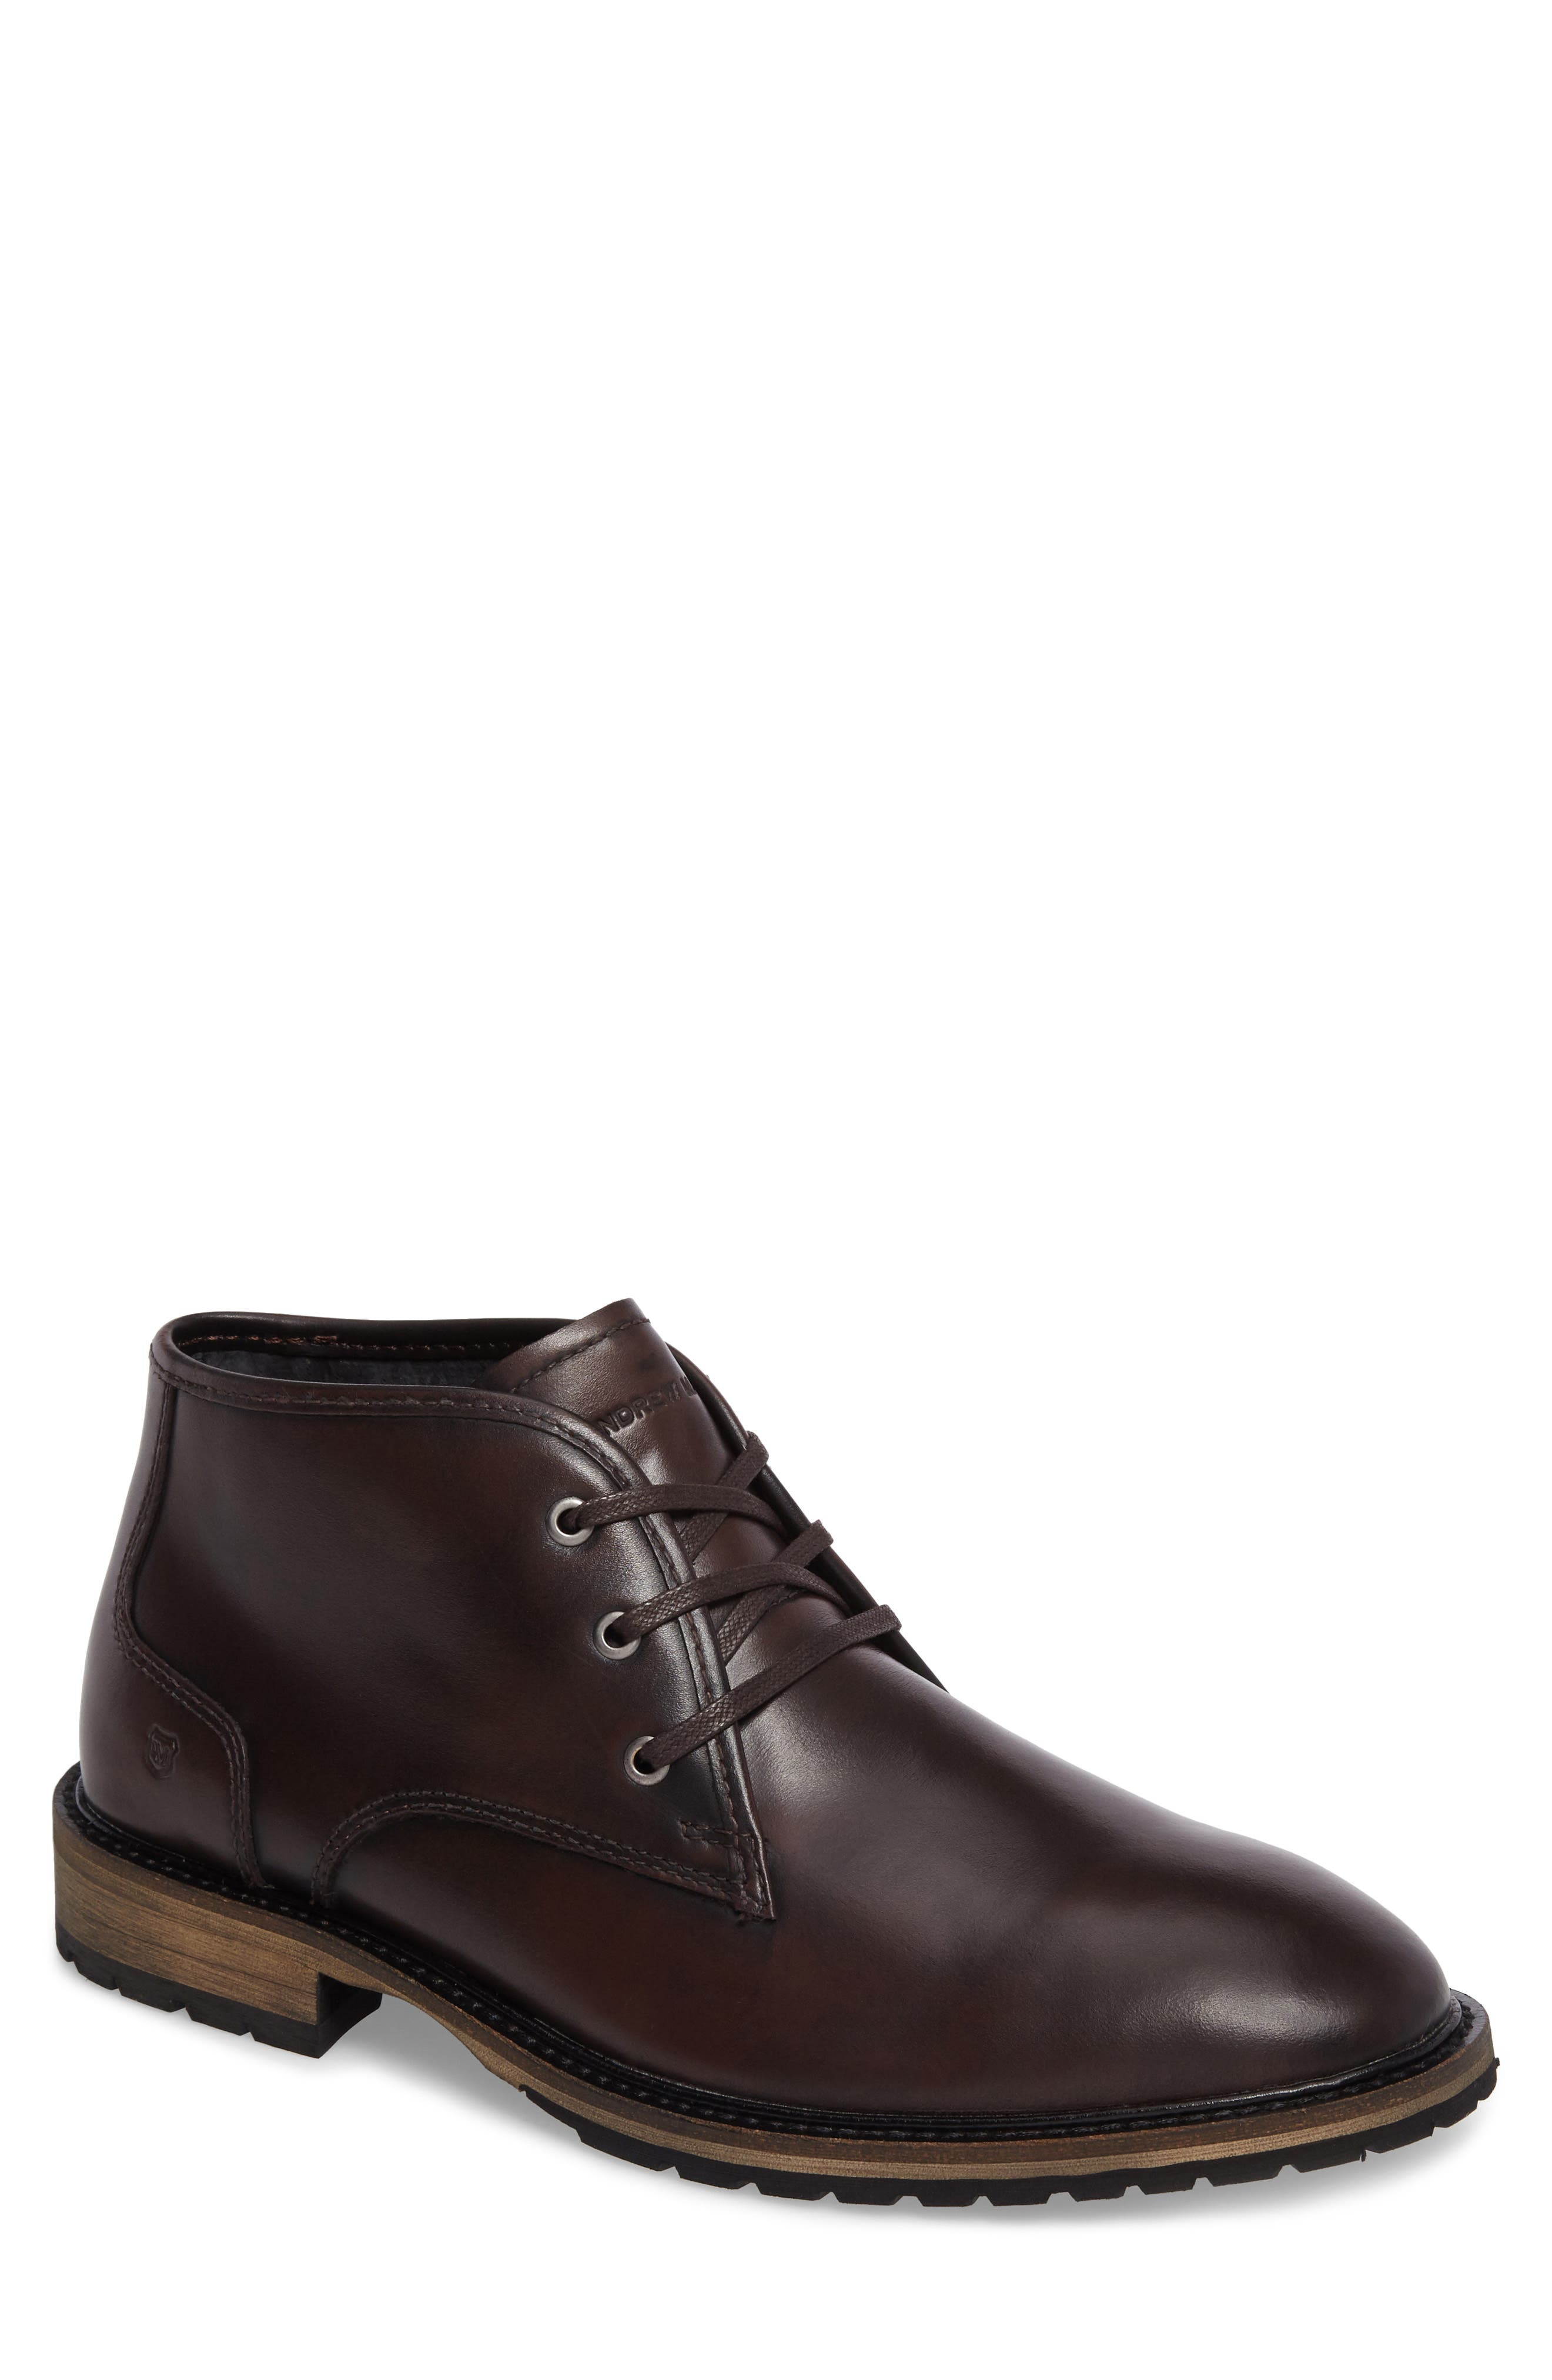 Main Image - Andrew Marc Woodside Chukka Boot (Men)